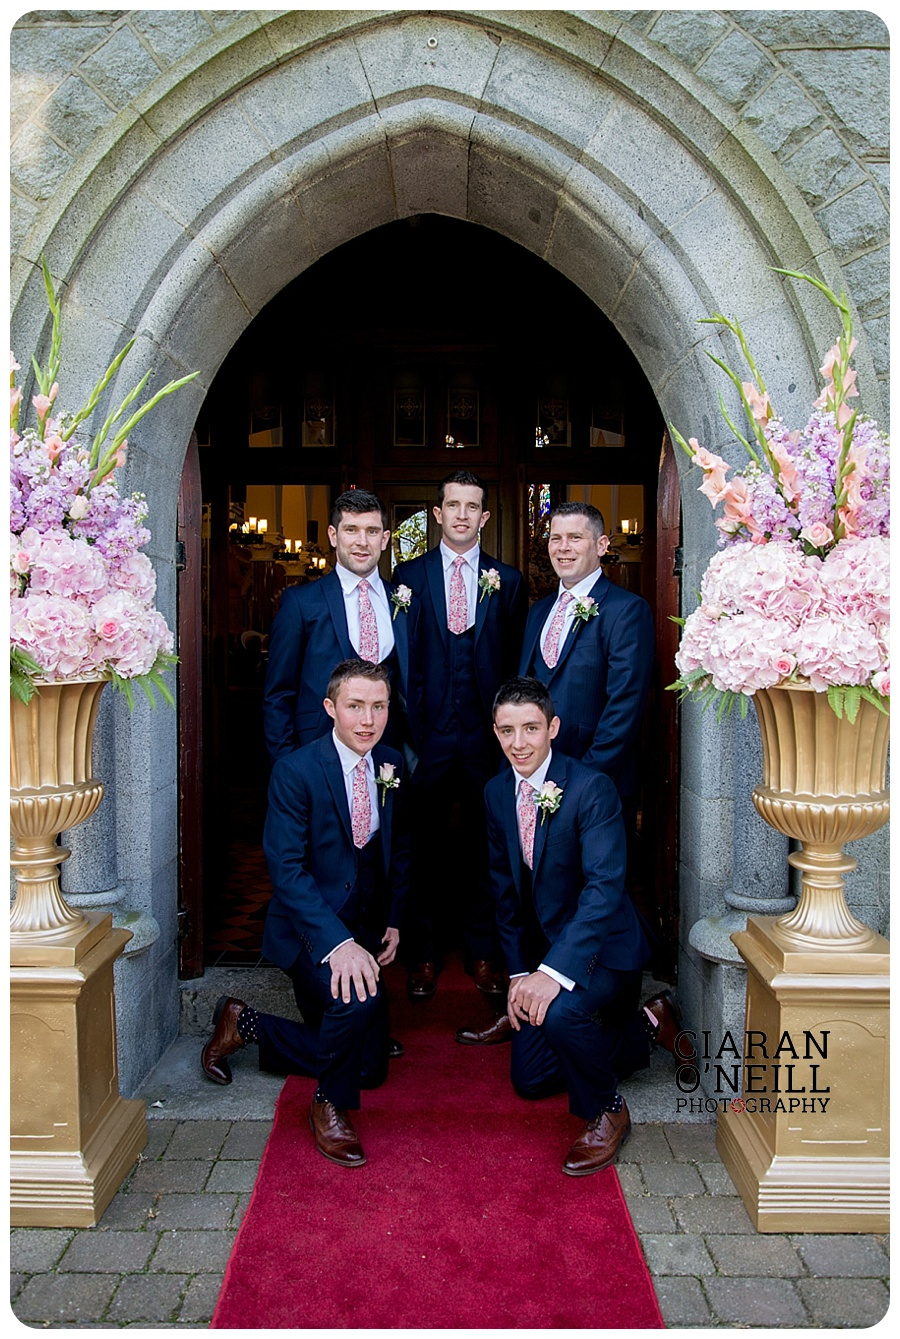 Laura & Liam's wedding at Galgorm Resort & Spa by Ciaran O'Neill Photography 07